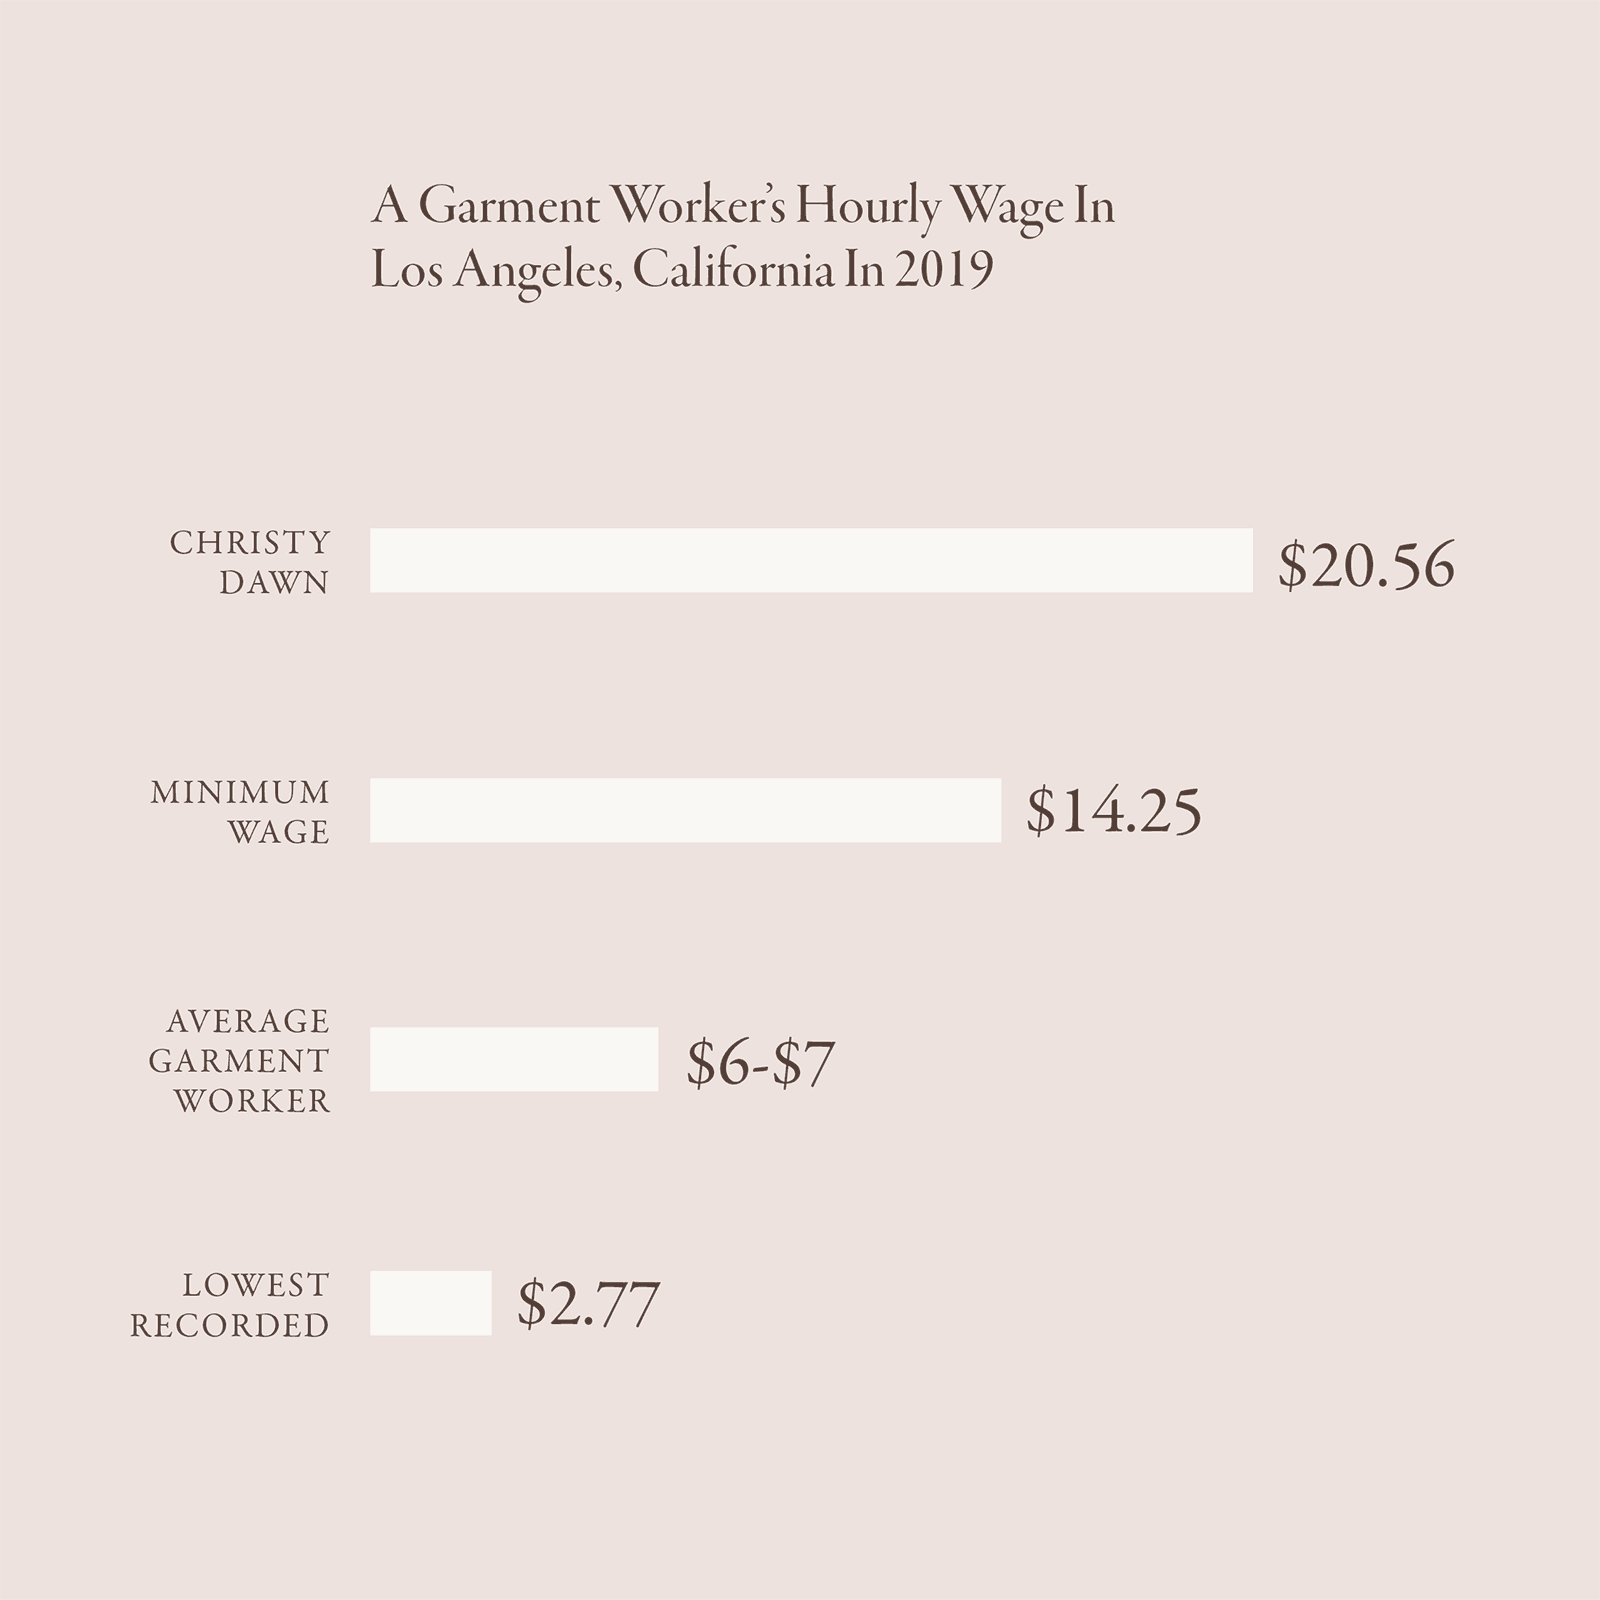 garment worker's hourly wage chart